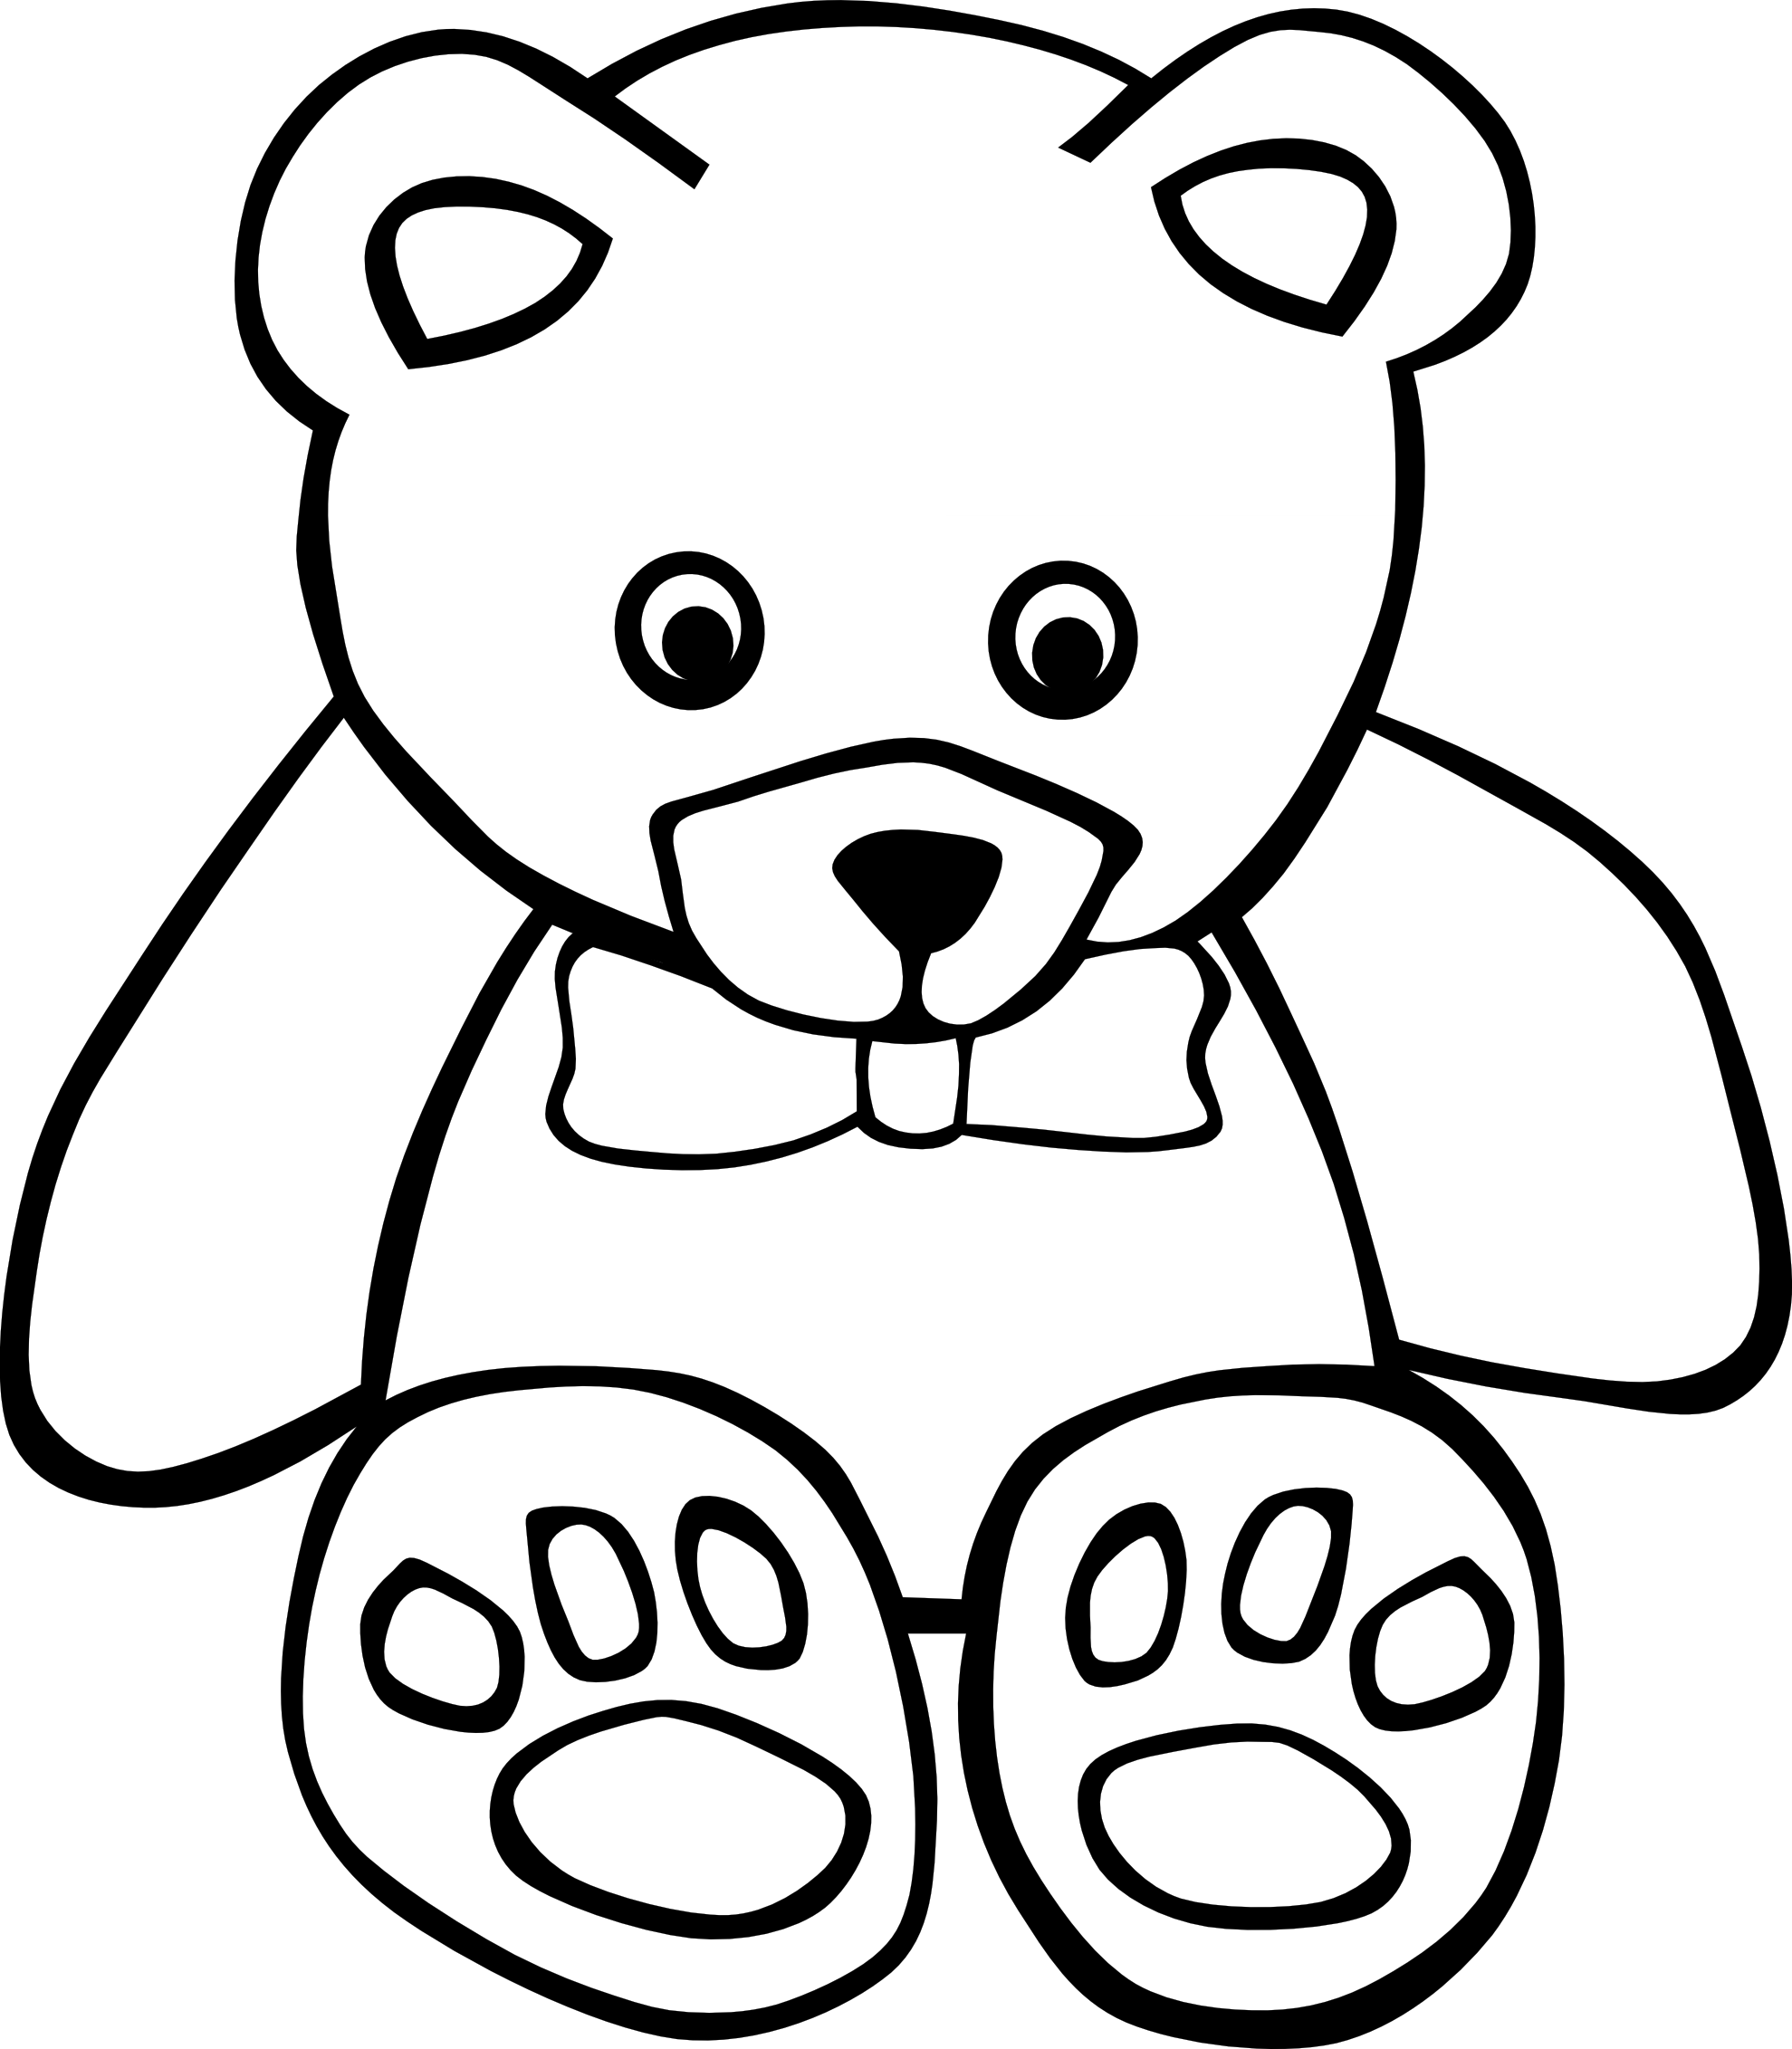 Bear clip art coloring. Teddy black and white